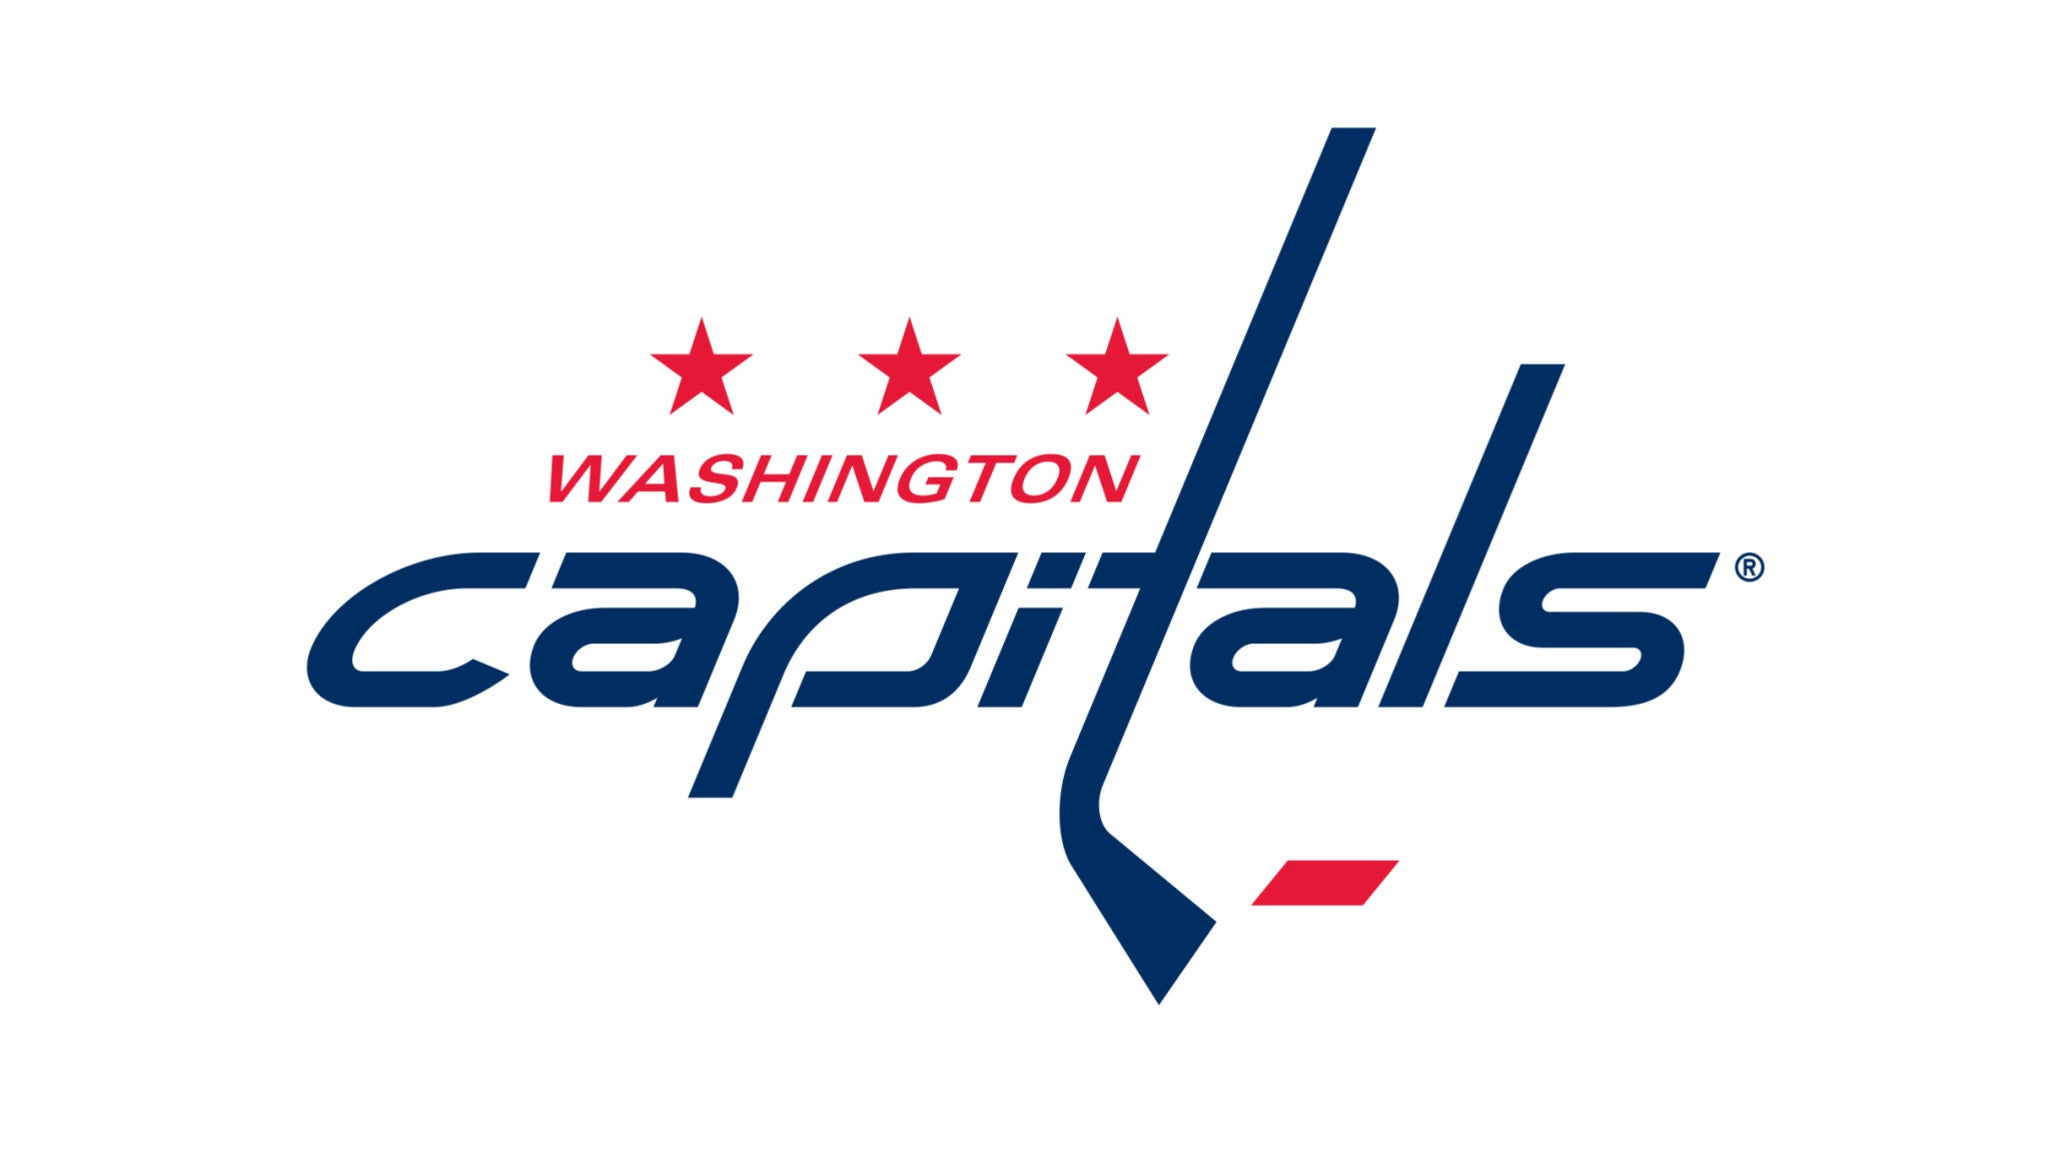 Washington Capitals vs. Anaheim Ducks at Verizon Center